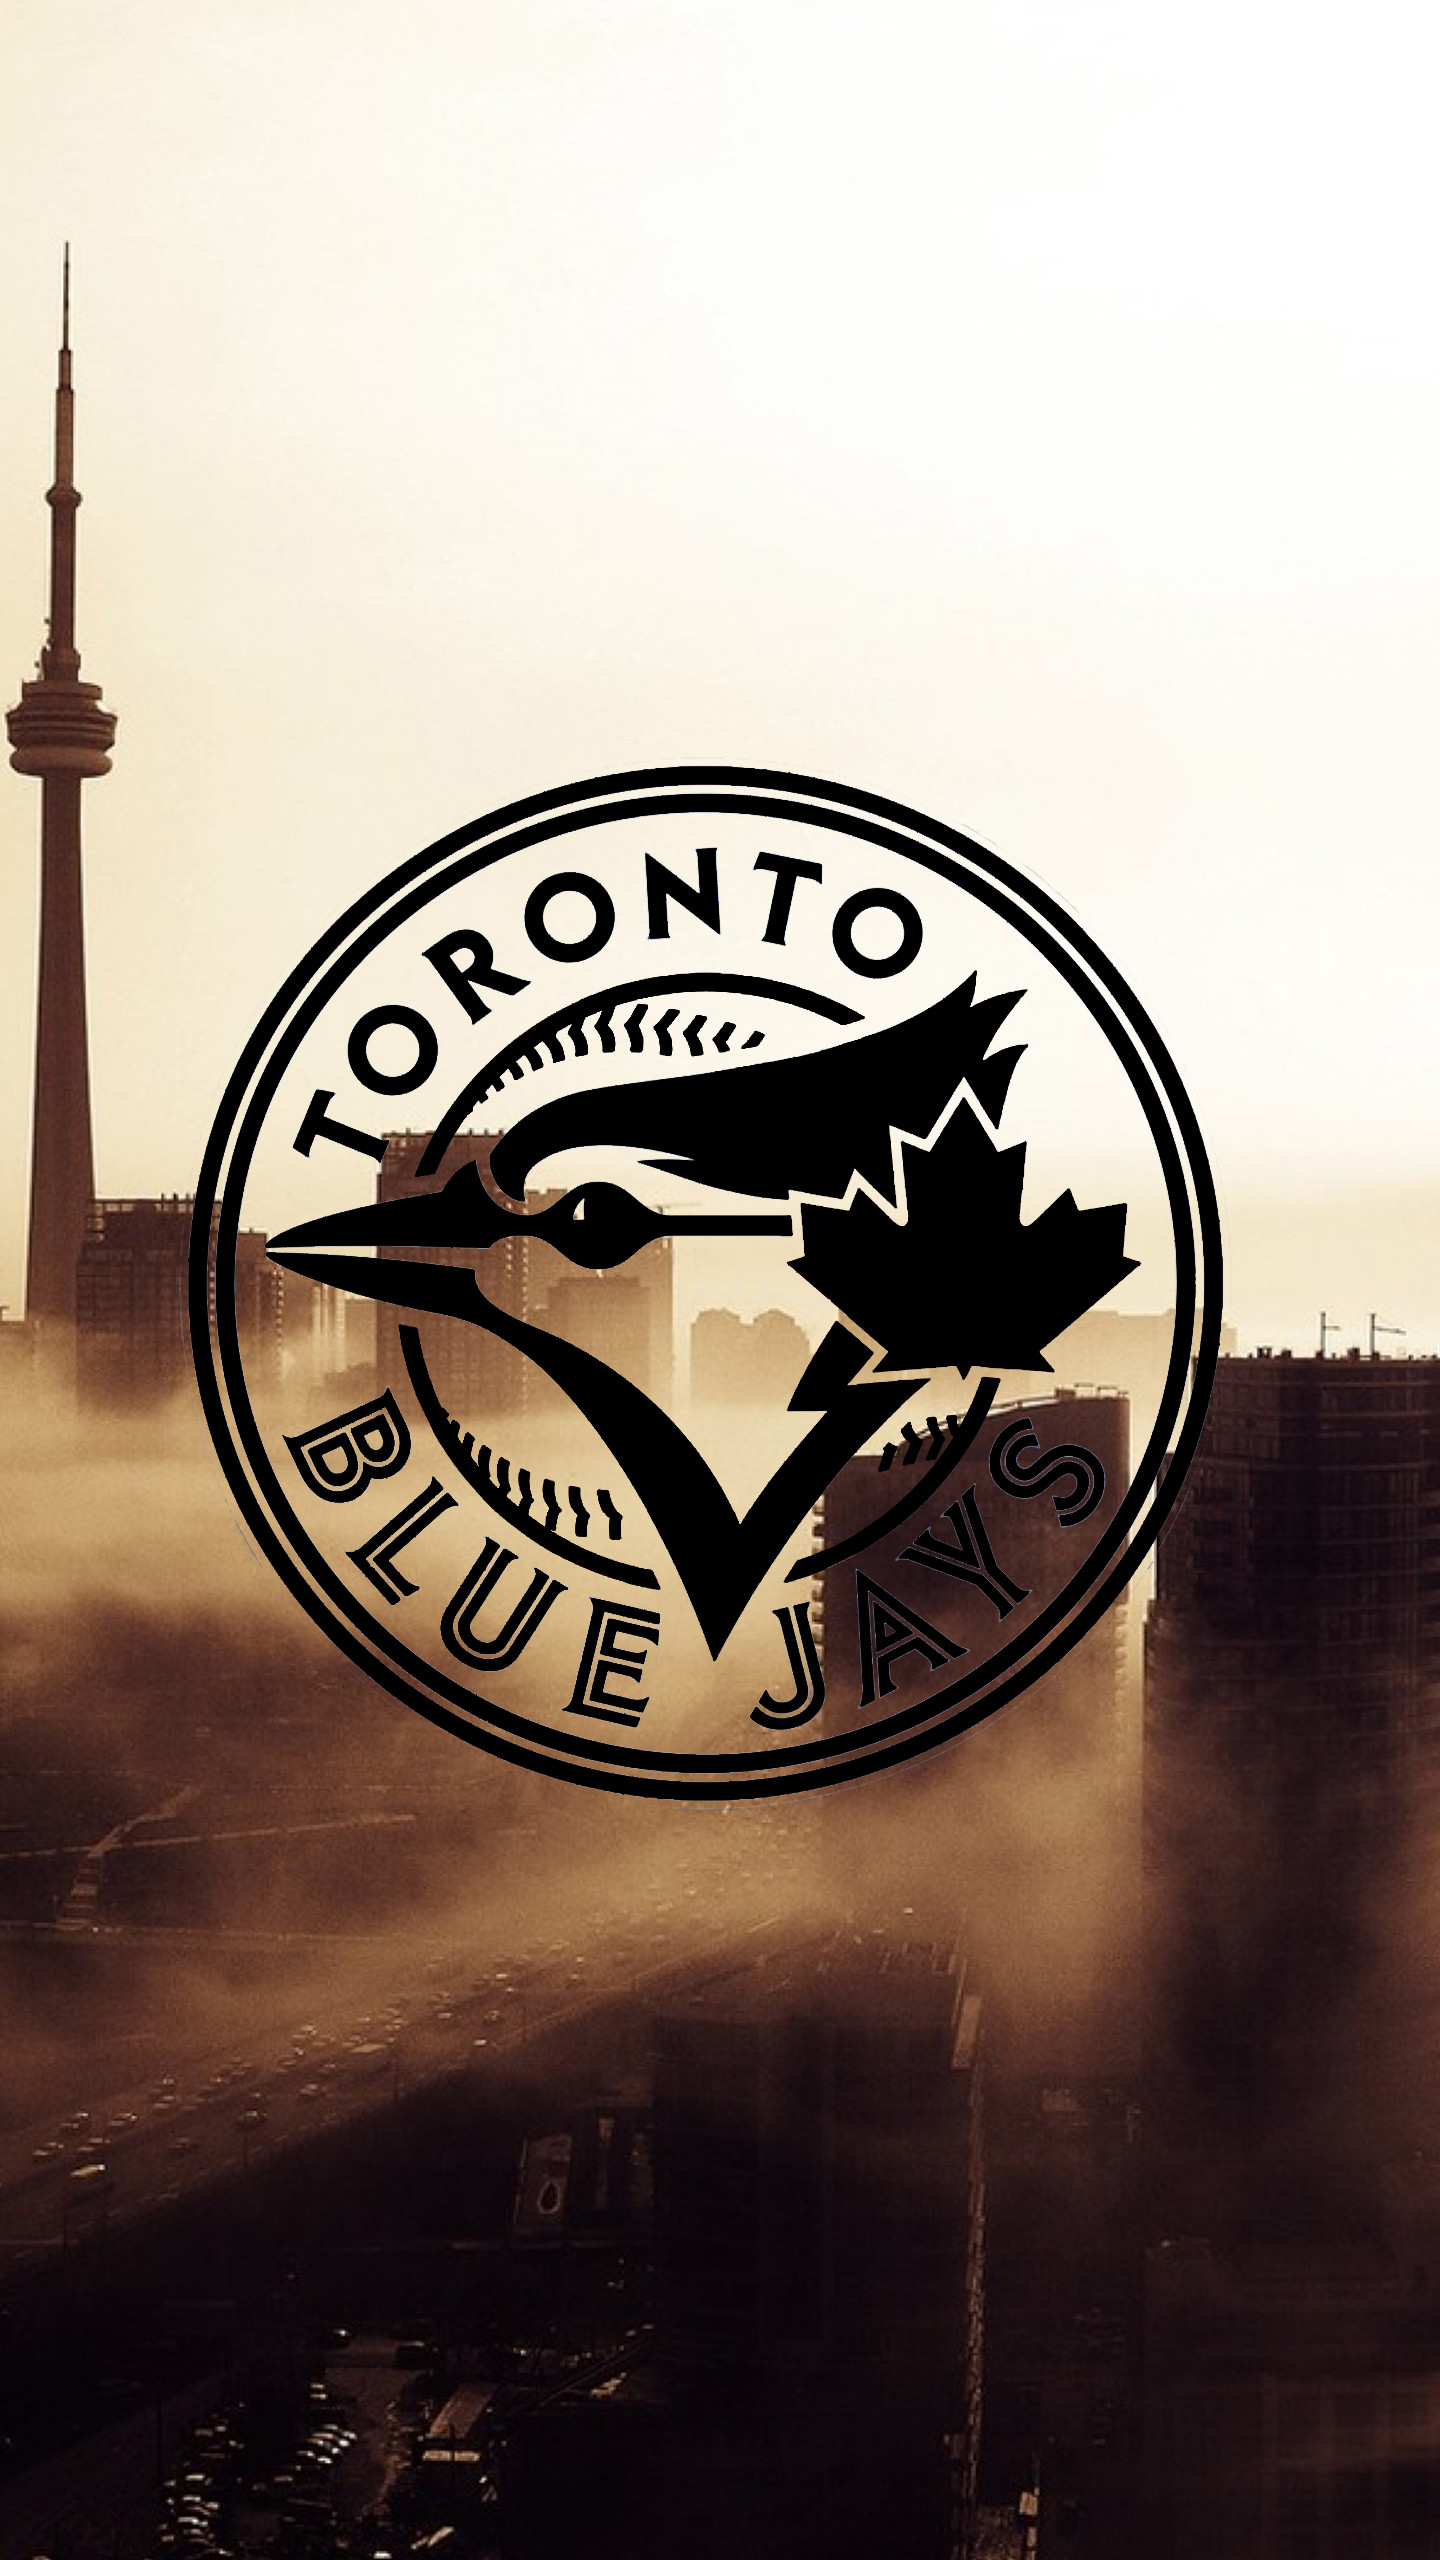 Toronto Blue Jays Wallpaper Iphone Posted By Sarah Thompson